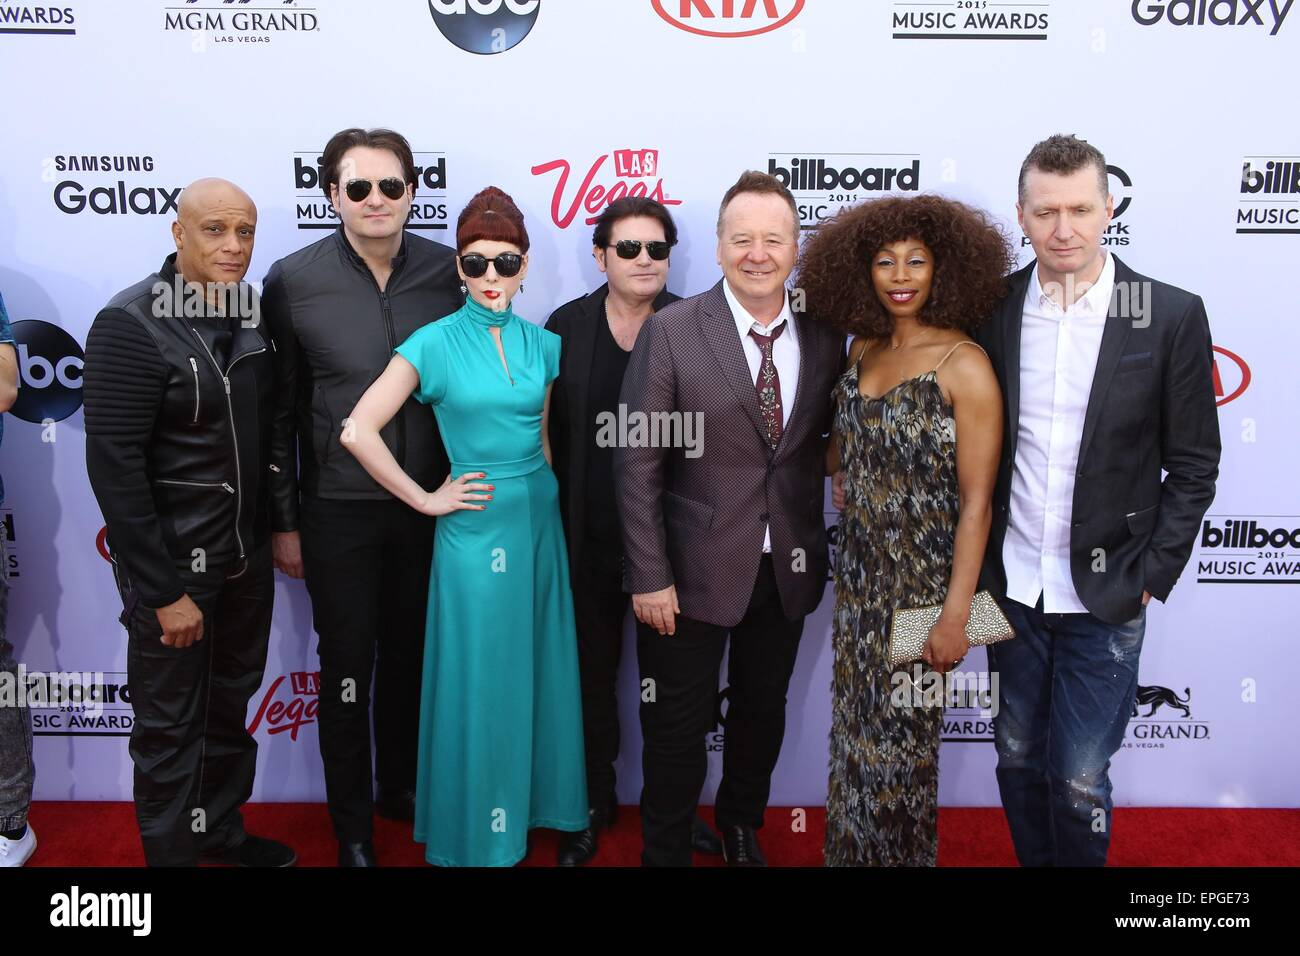 Las Vegas, NV, USA. 17th May, 2015. Simple Minds at arrivals for 2015 Billboard Music Awards - Part 3, MGM Grand - Stock Image